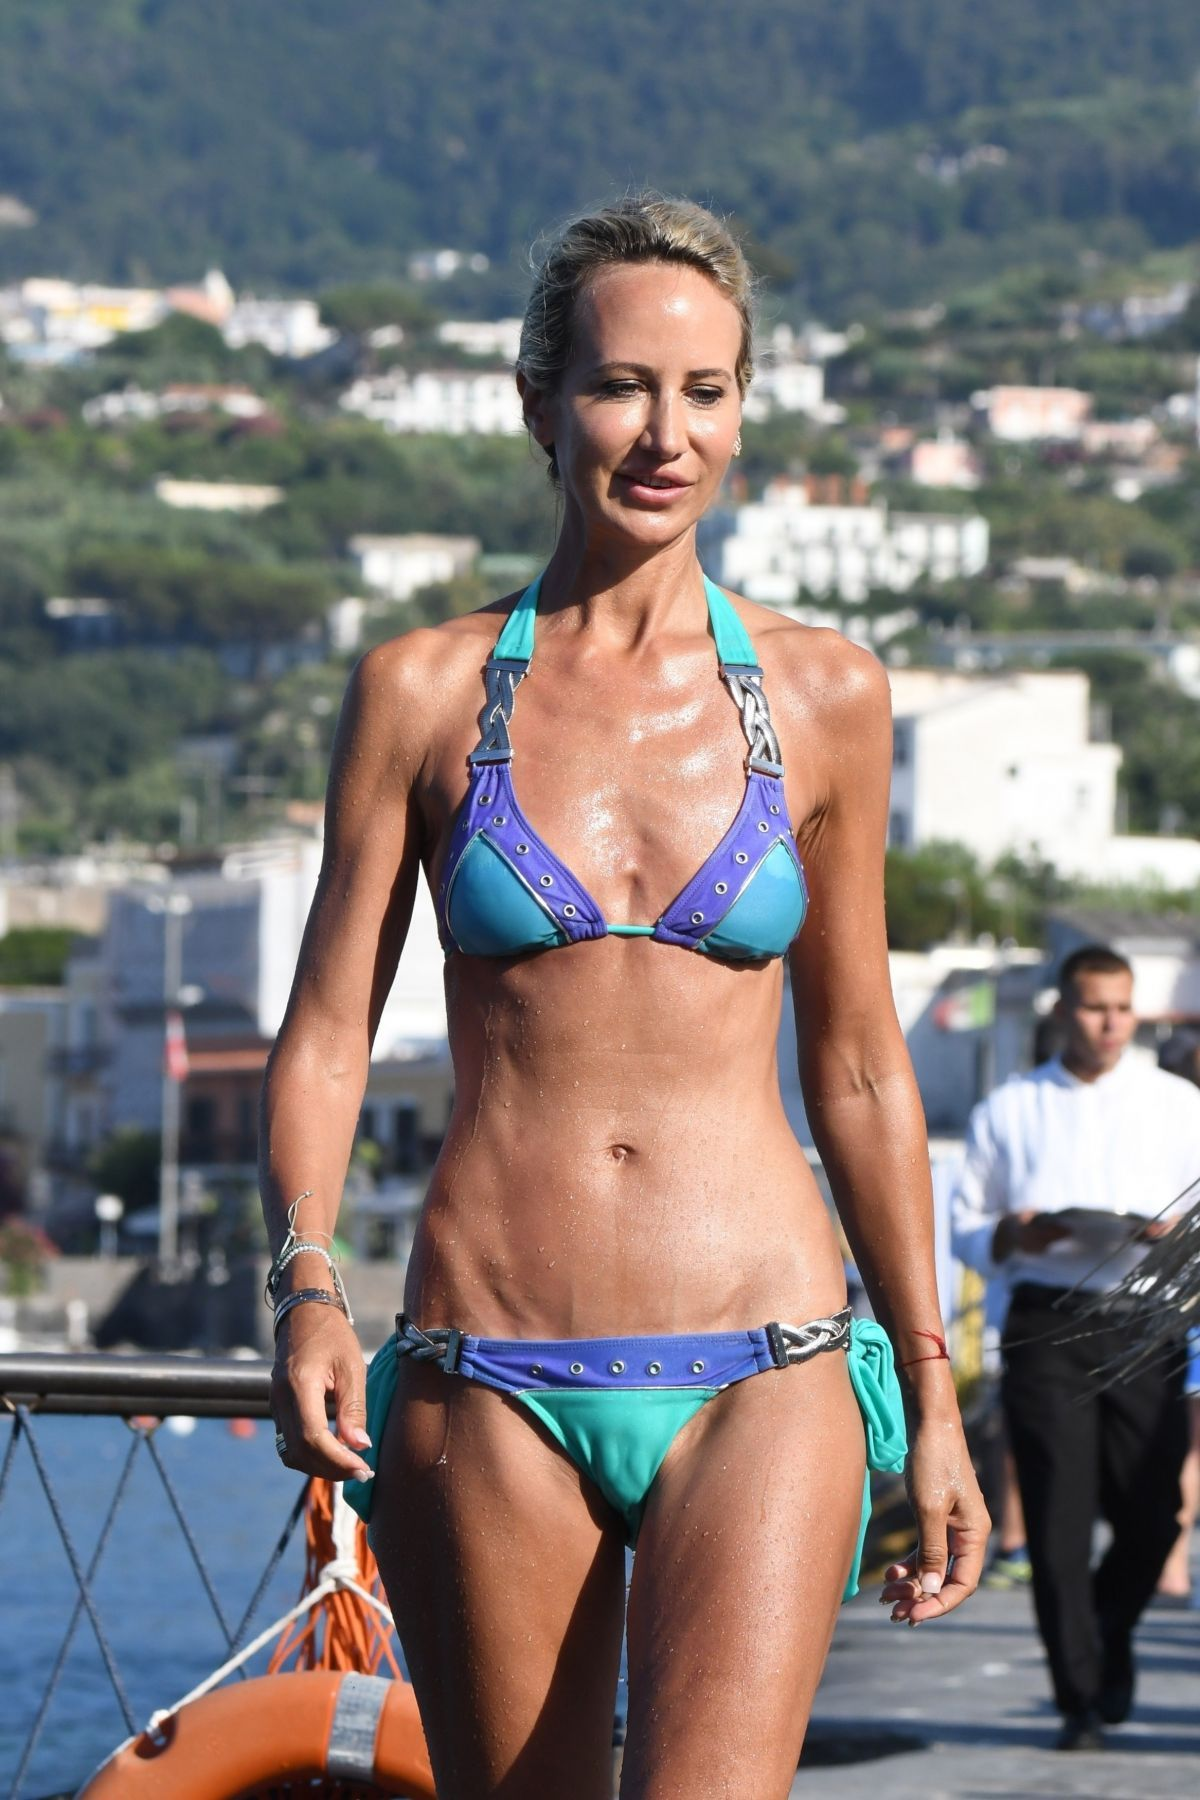 Bikini Victoria Hervey nude (98 photos), Topless, Sideboobs, Boobs, butt 2020